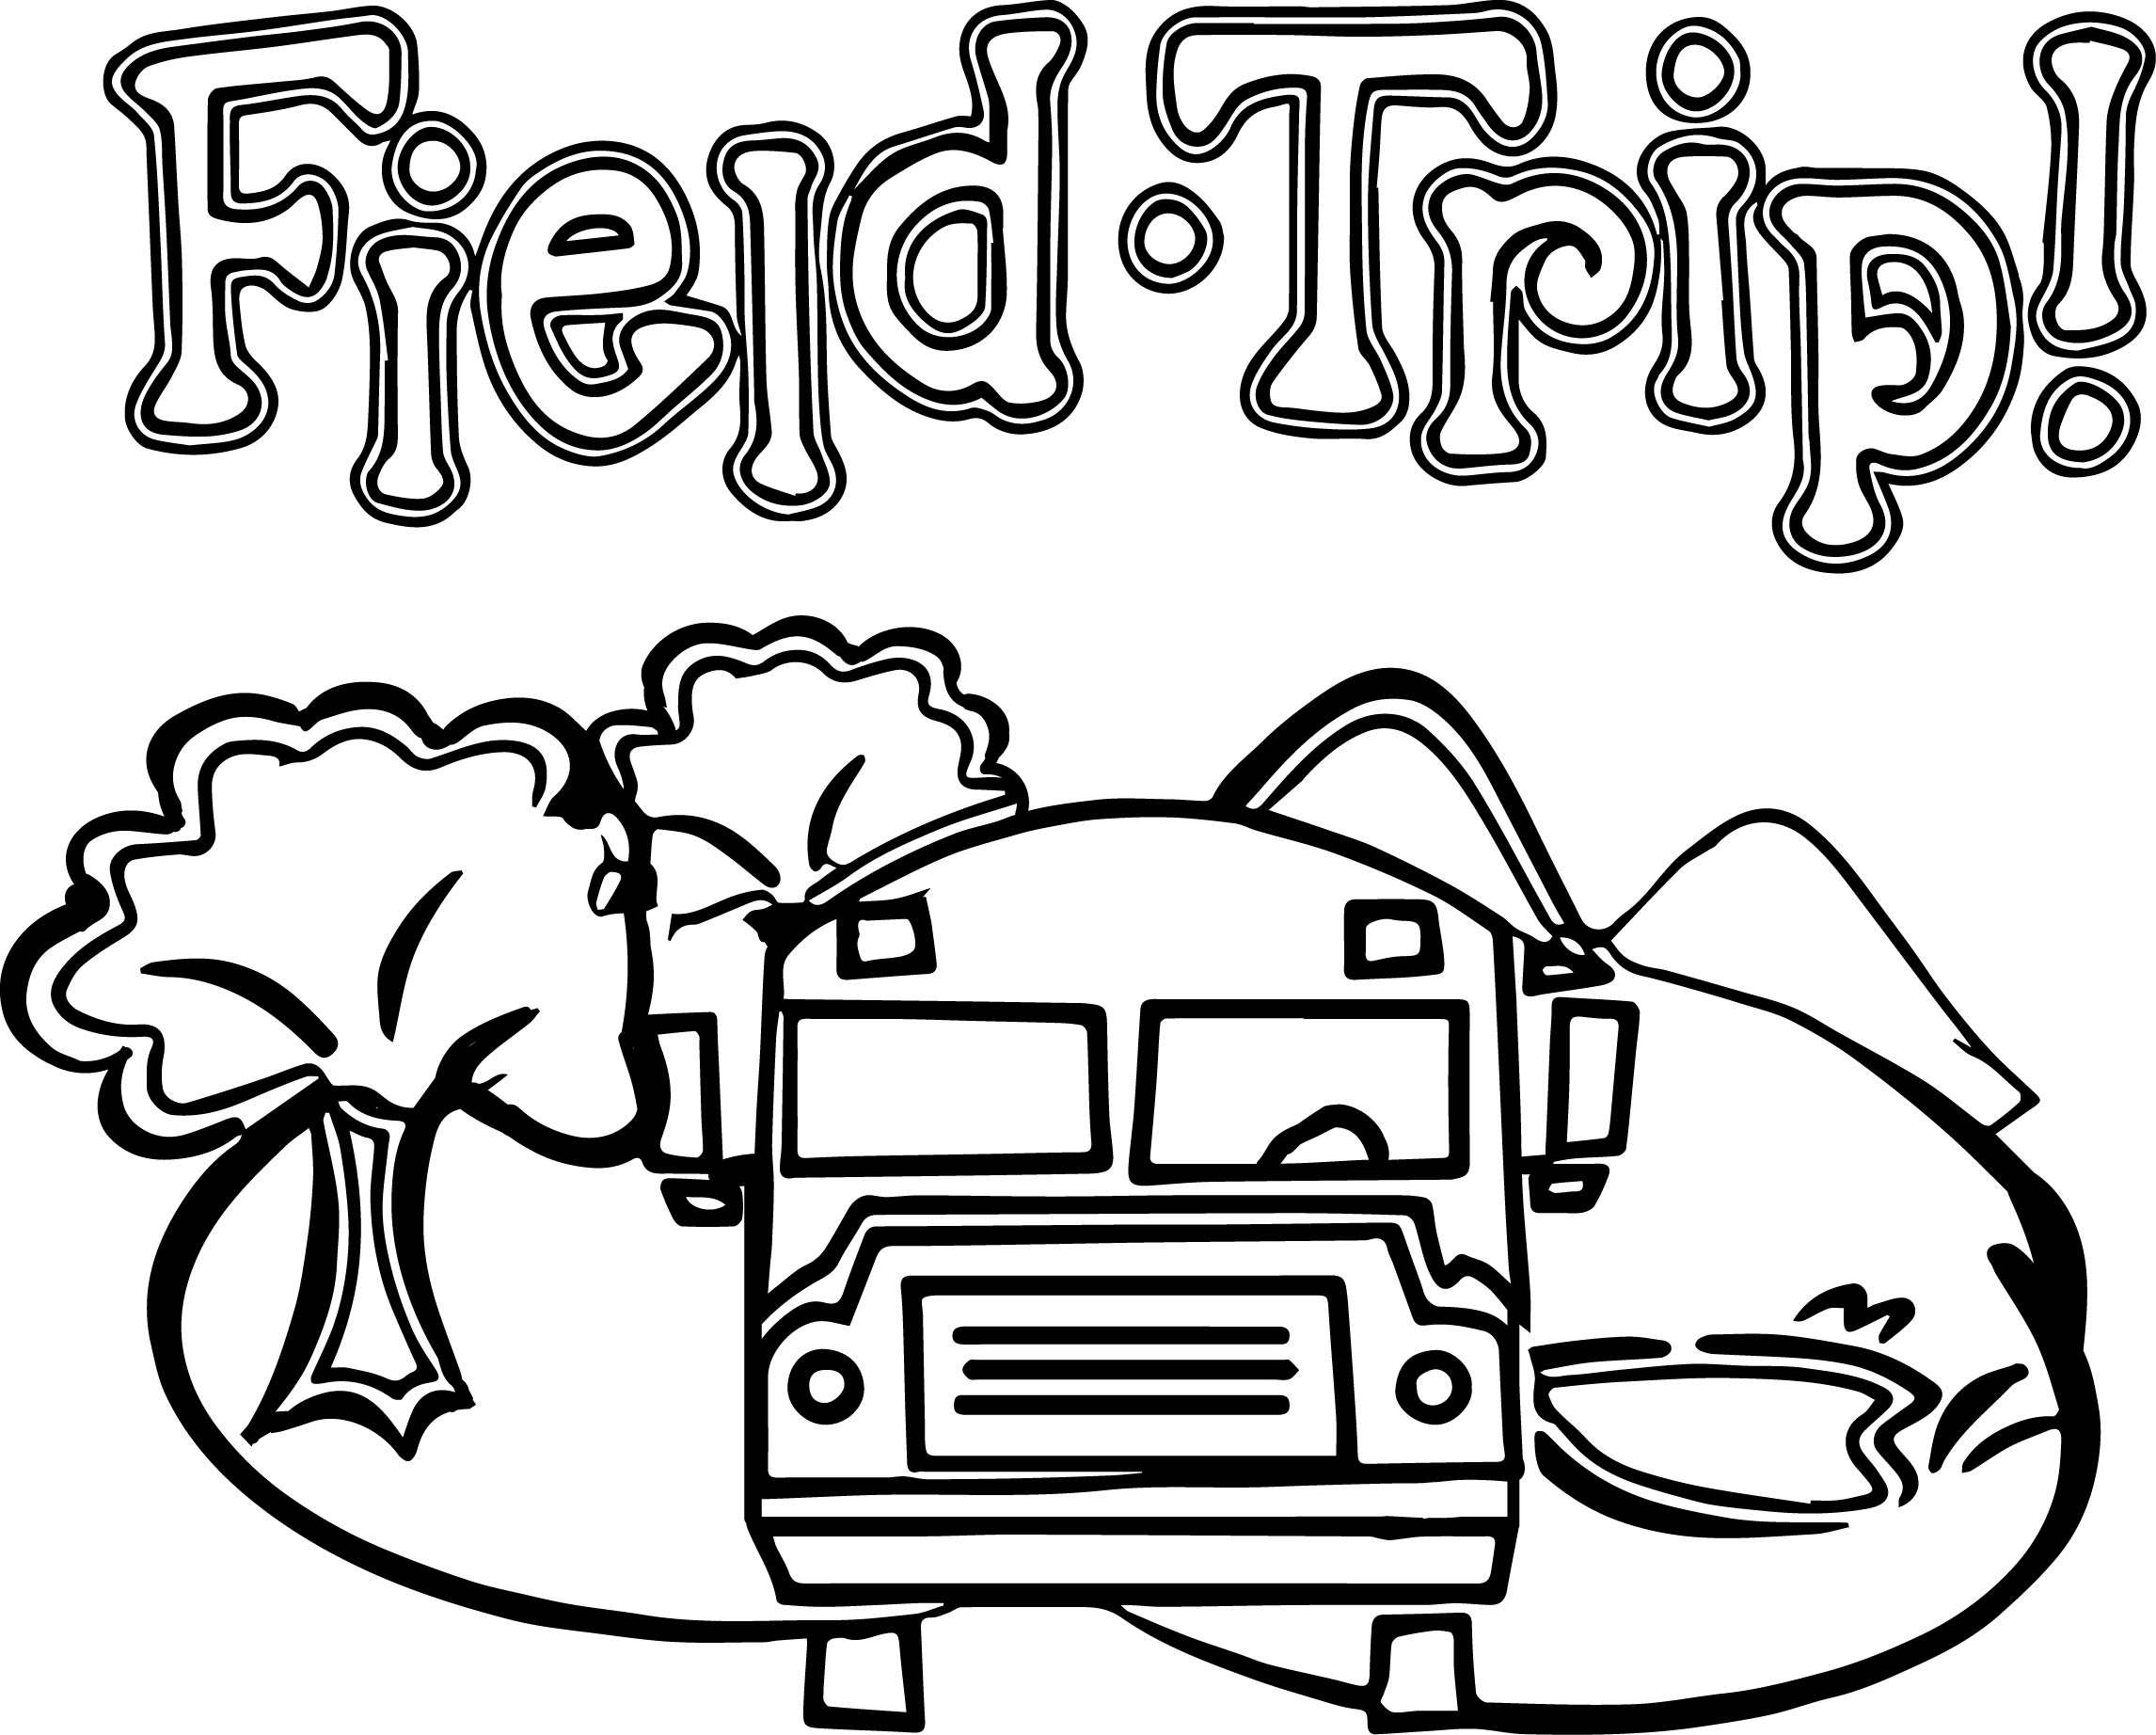 Zoo Field Trip Bus Coloring Page